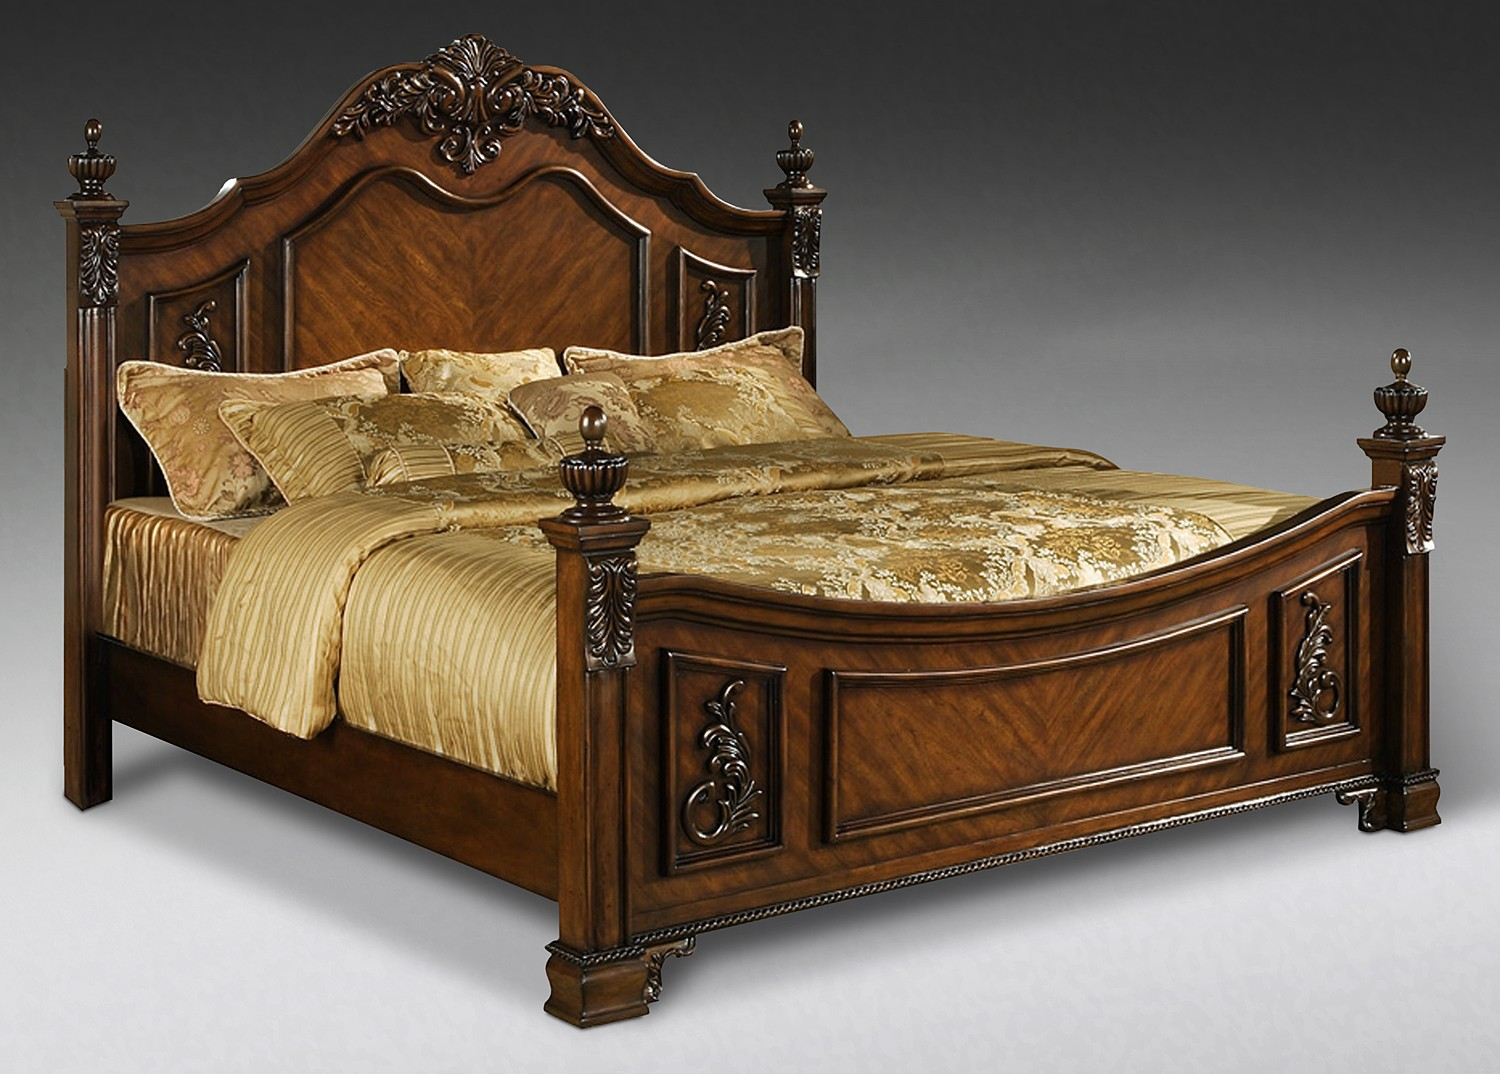 Double bed designs in wood - Indian Solid Wood Bed Indian Wooden Storage Beds Indian